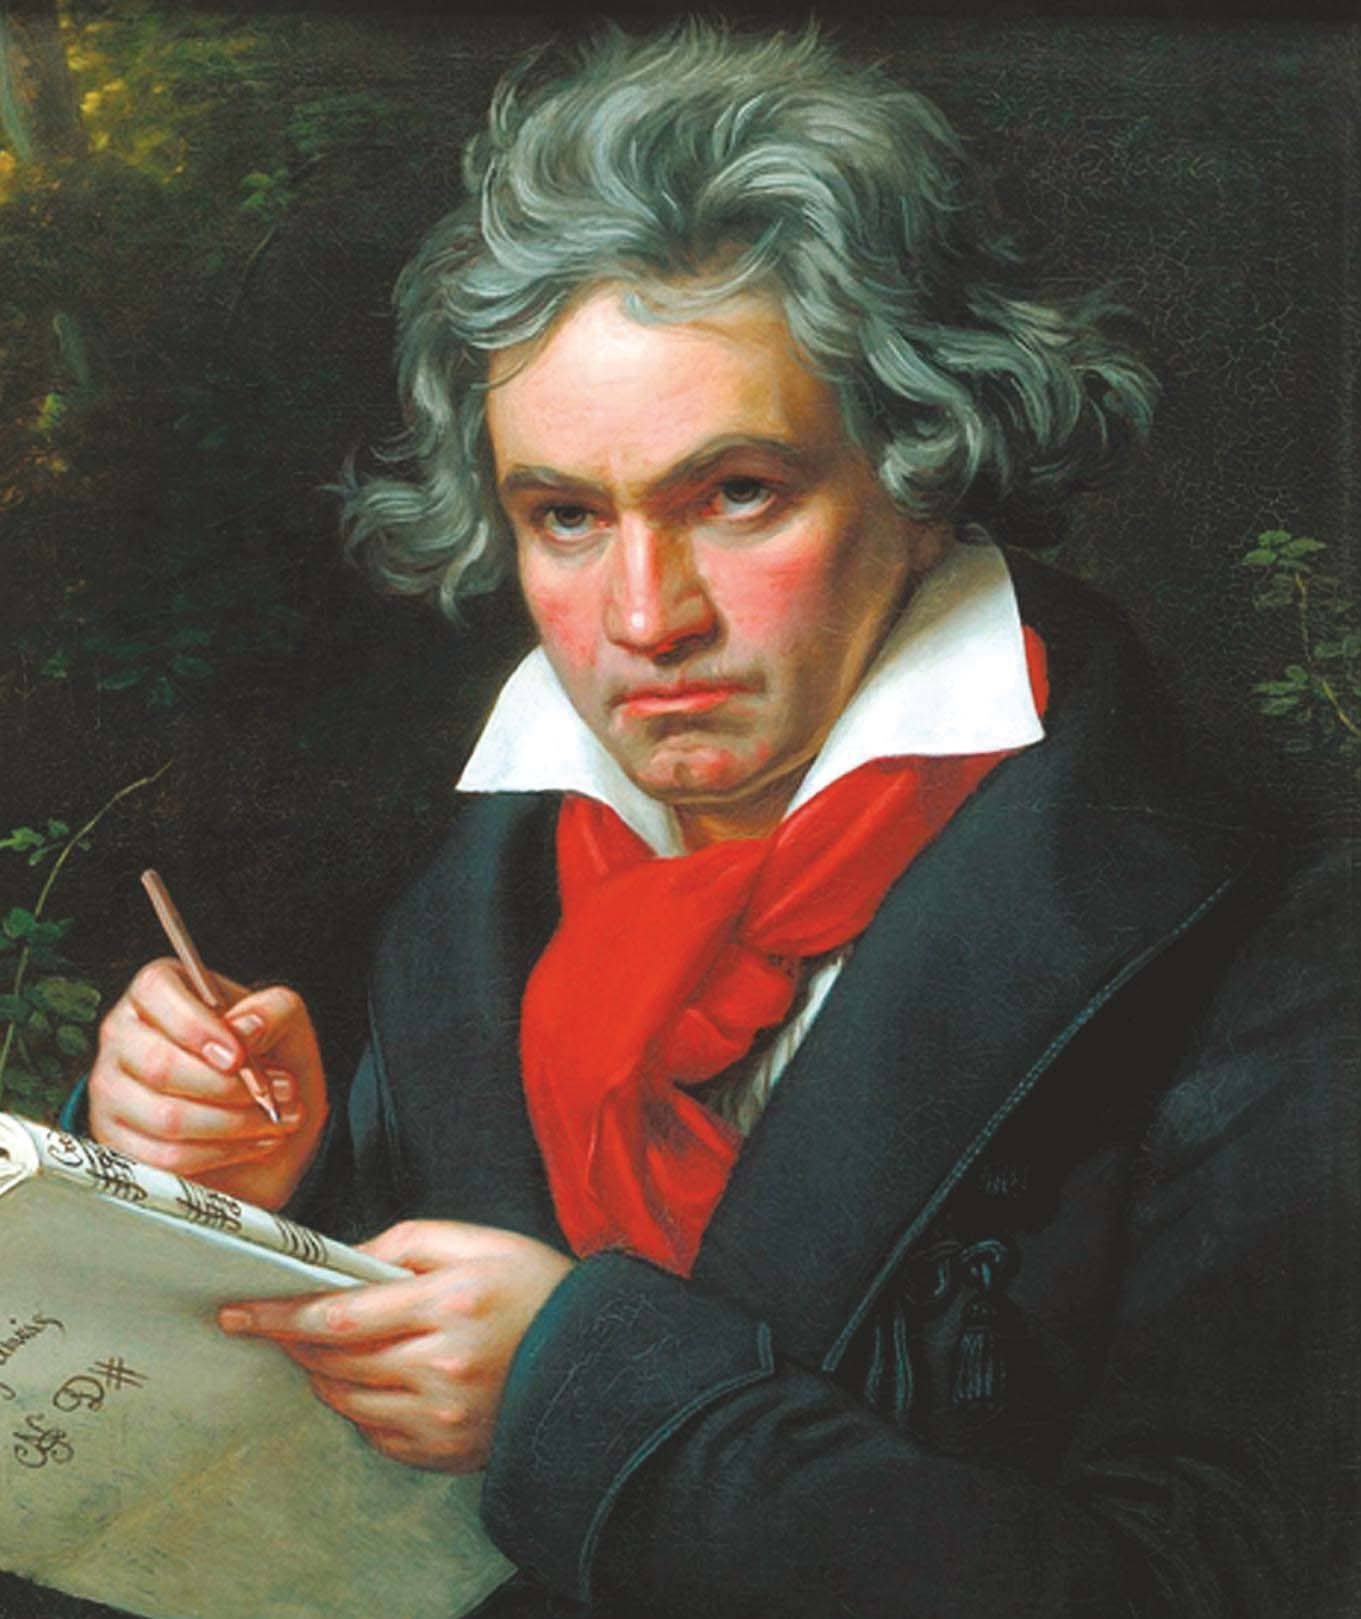 Roll on, Beethoven